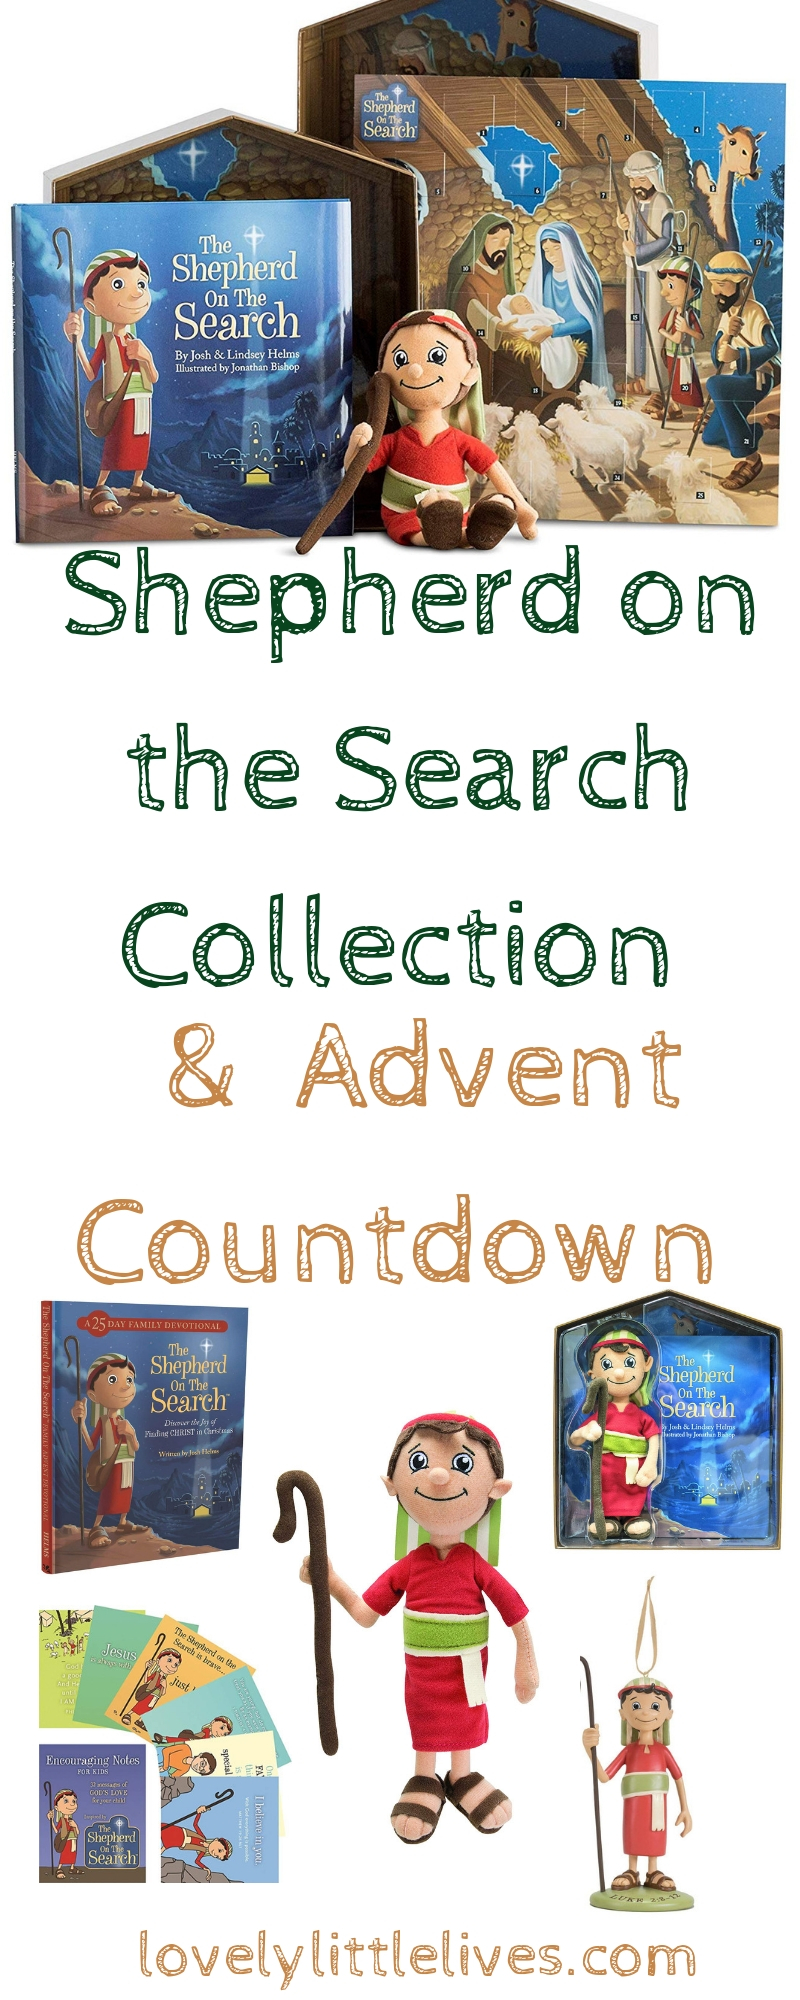 Shepherd on the Search Advent Countdown #shepherdonthesearch #adventcountdown #christmascountdown #countdowntochristmas Click through to sign up for the Advent Countdown with the Shepherd!